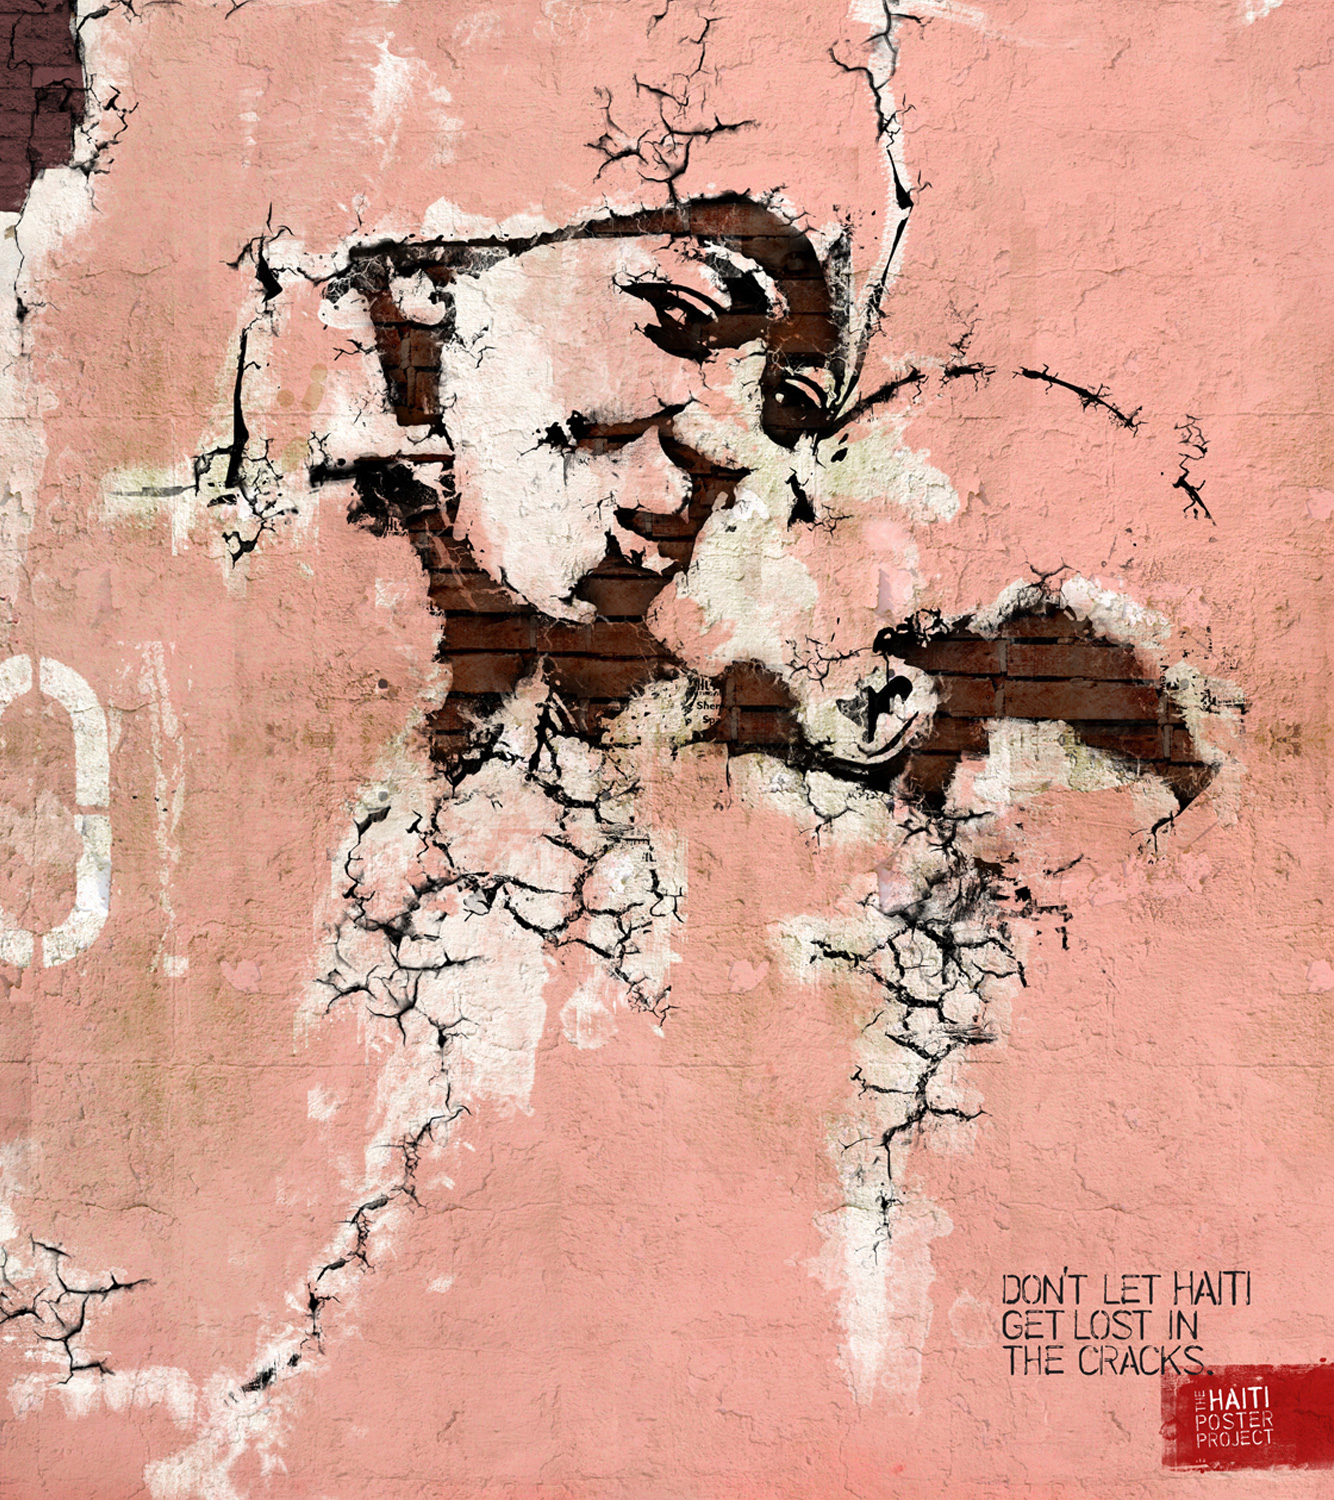 poster showing a cracked painting of a mother kissing her child